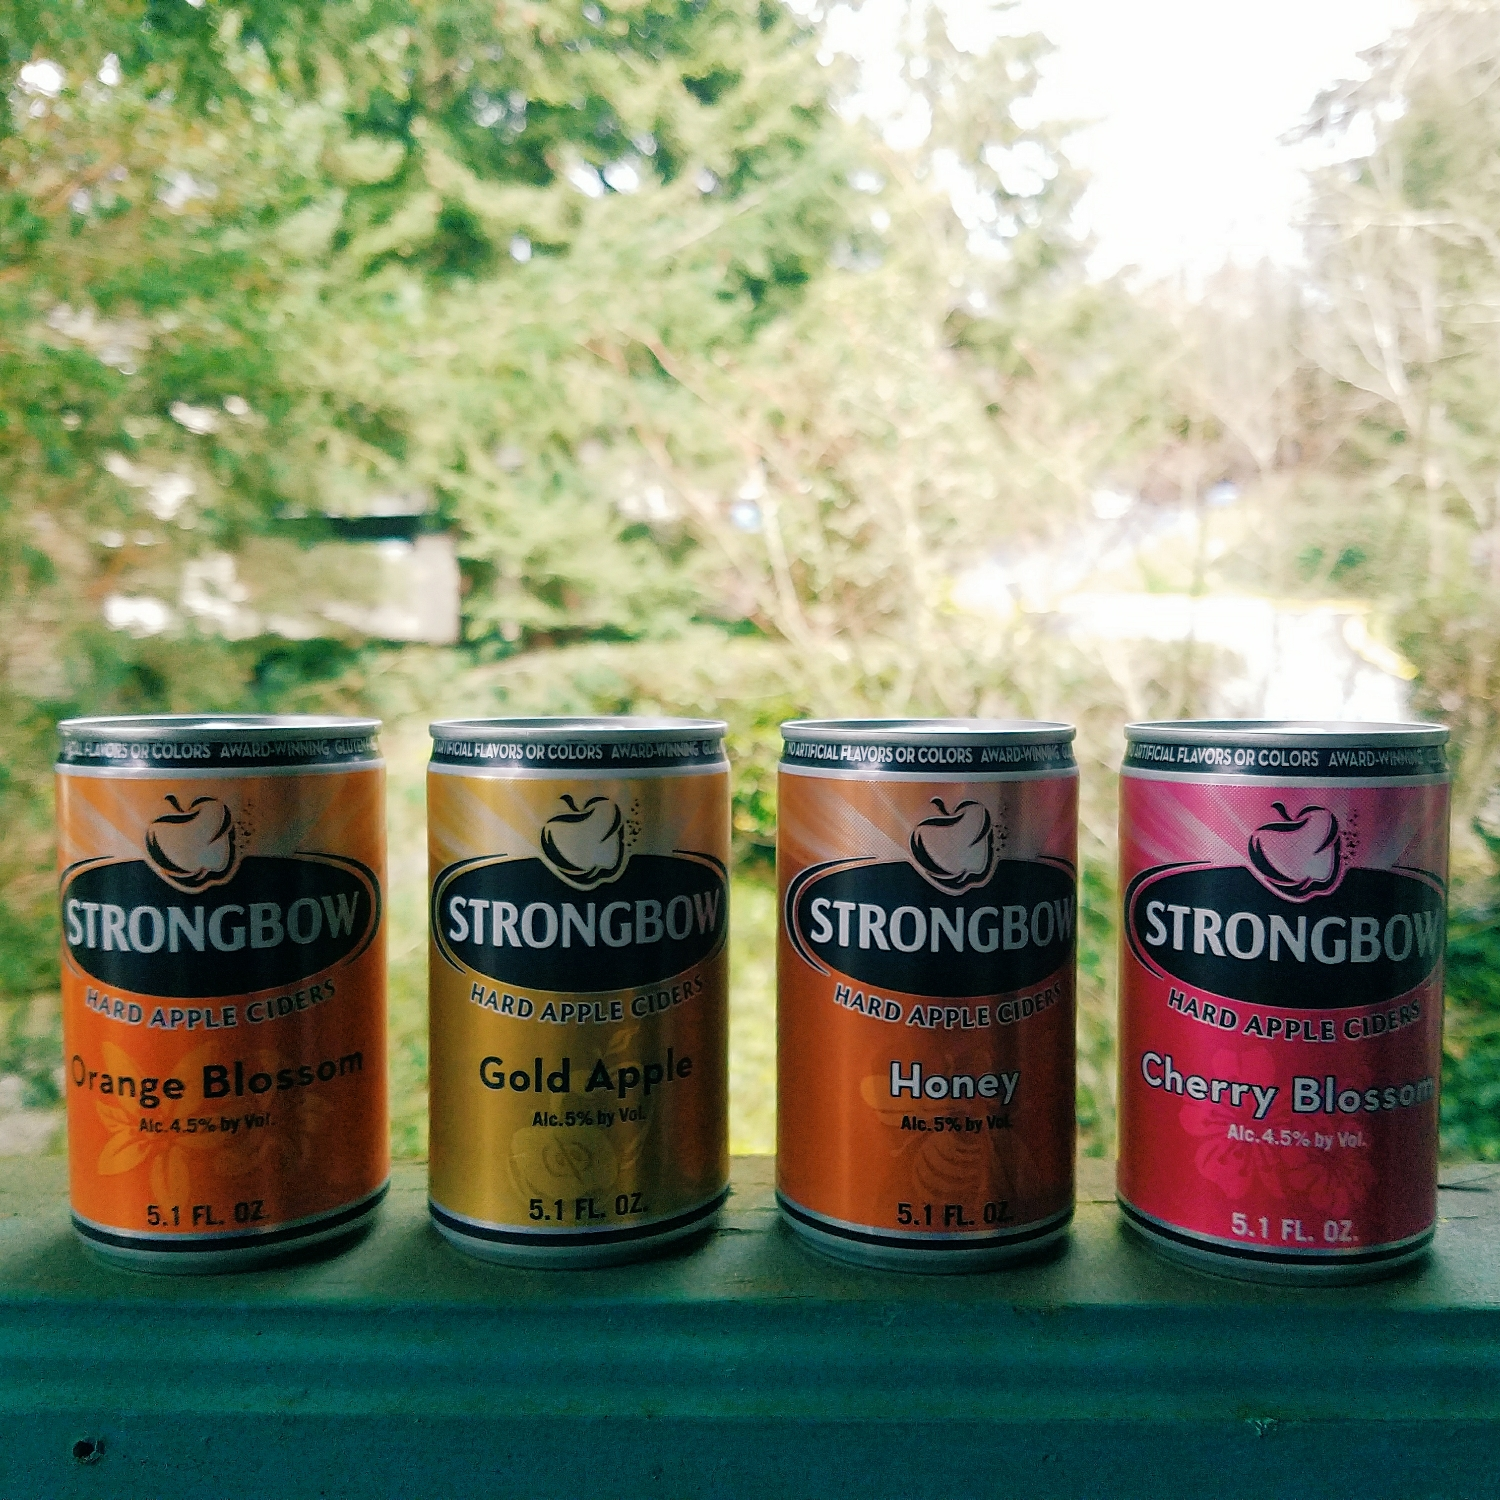 Andy found this adorable 4-pack of spring ciders! The cherry blossom tasted like cough syrup, but the other were all lovely.